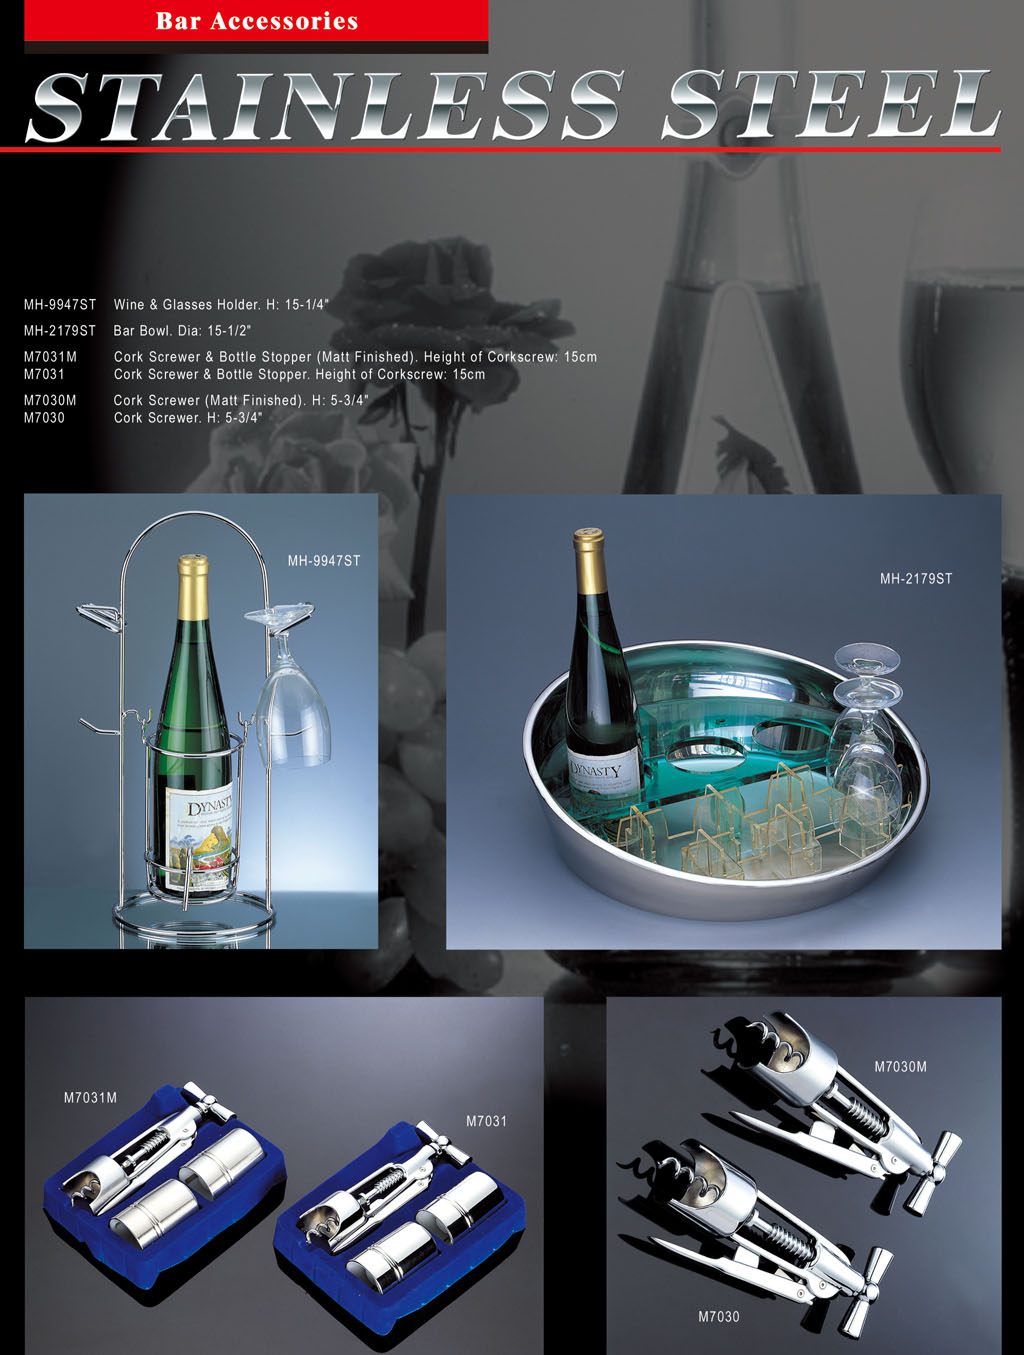 Stainless Steel Ware - Bar Accessories